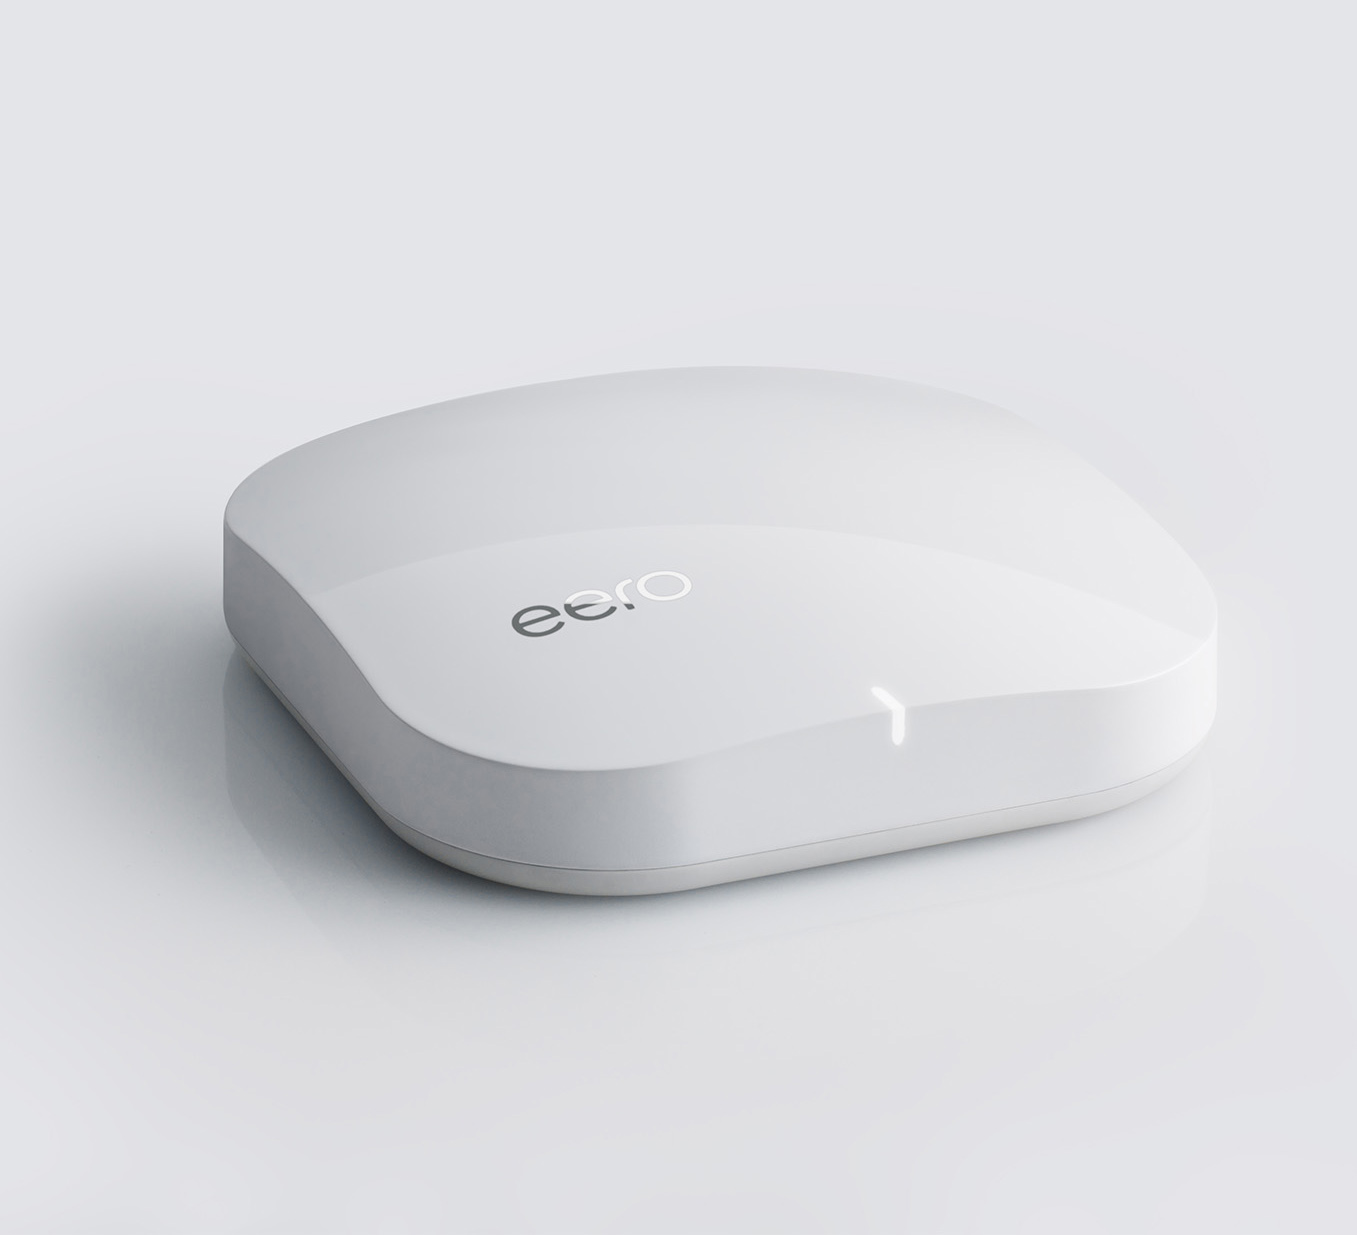 Eero May Be the Next Nest, But For Wi-Fi